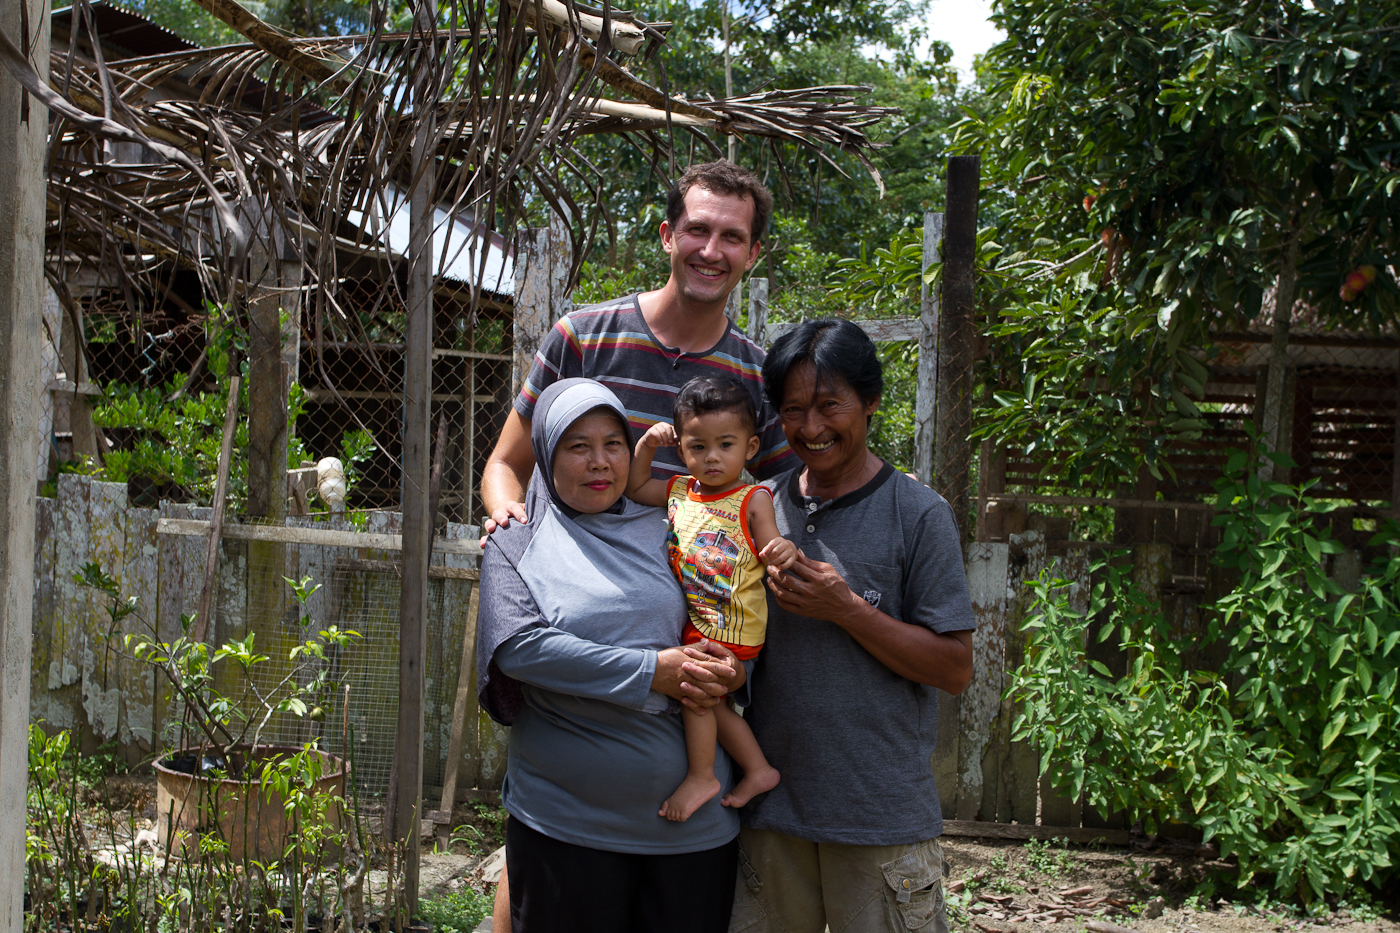 Jamil and his wife Suri were excellent hosts. Here seen with their grandson and what appears to be a giant.